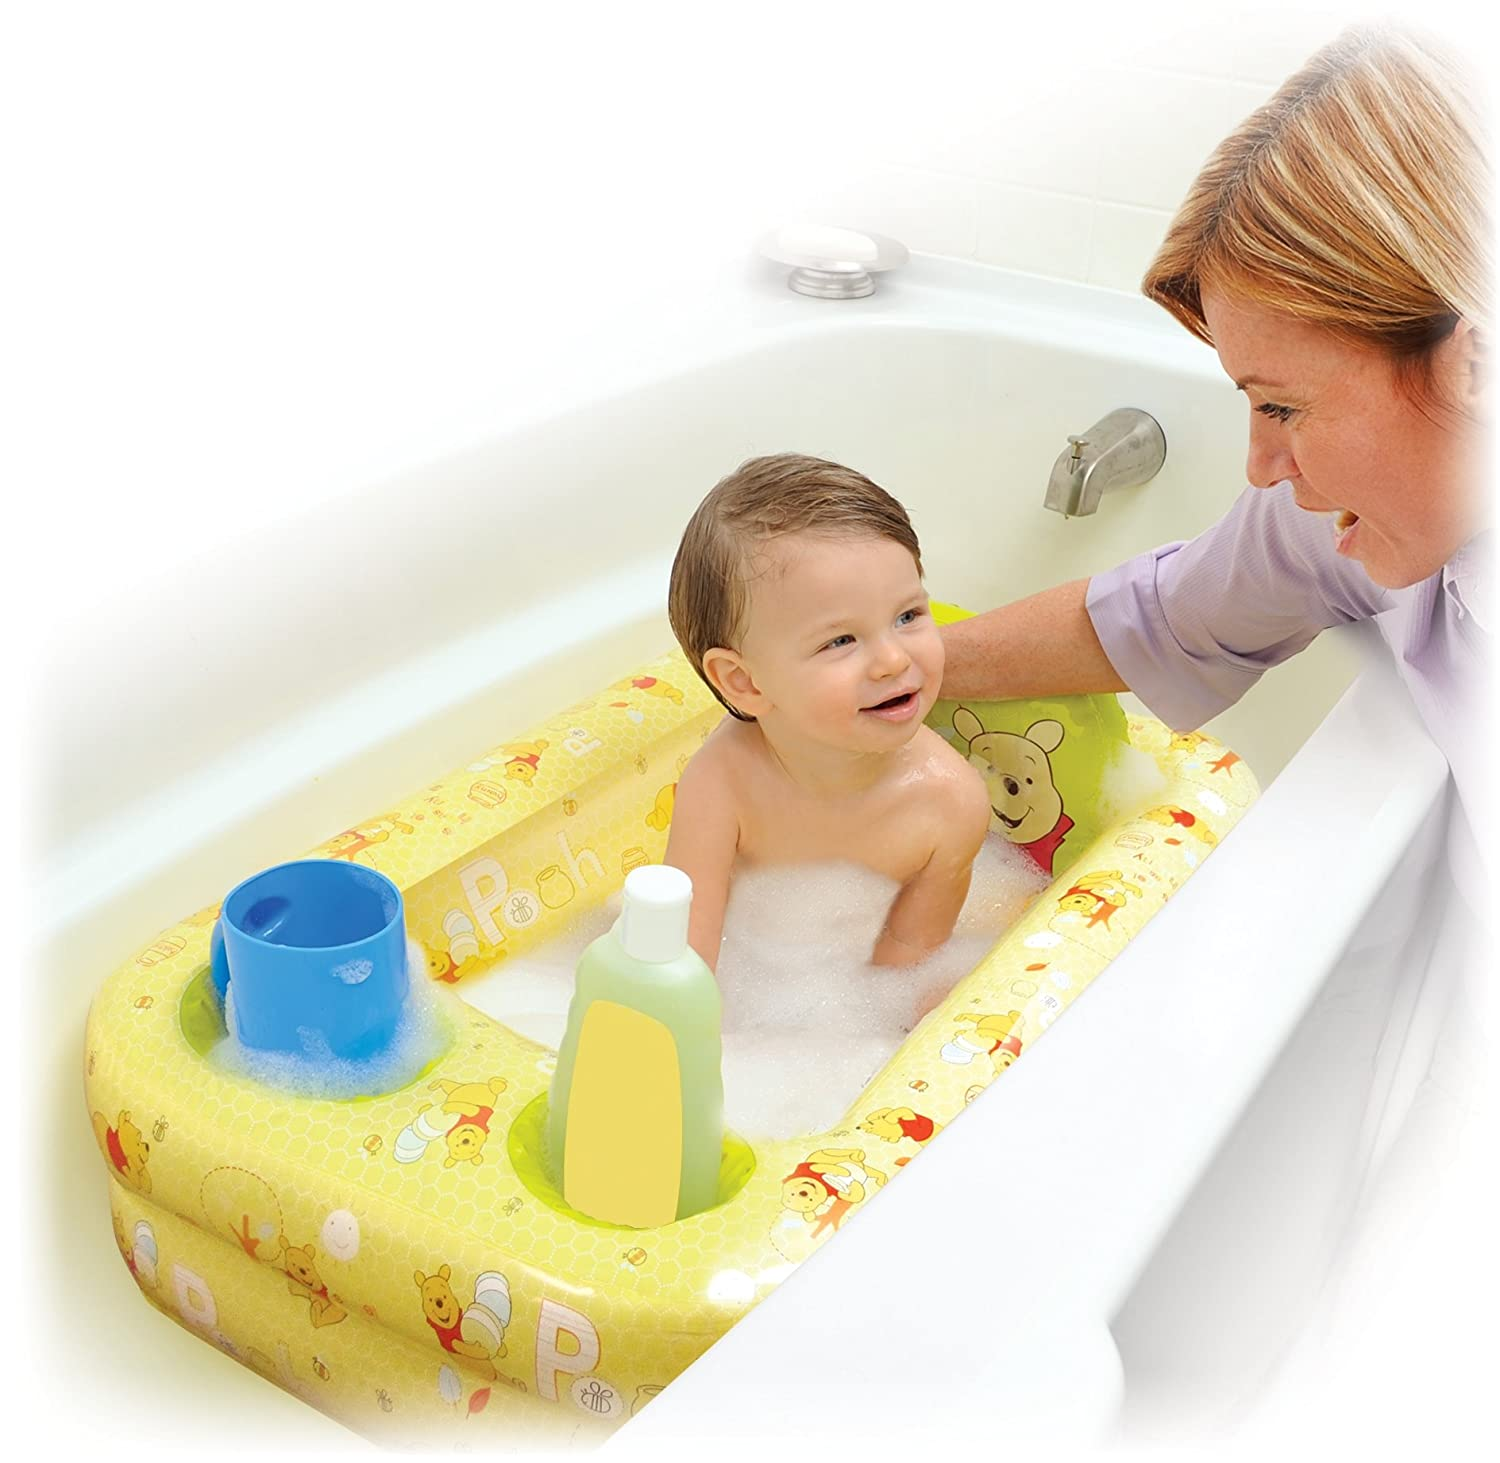 Top 10 Best Large Size Baby Bath Tubs Reviews 2016 2017 On